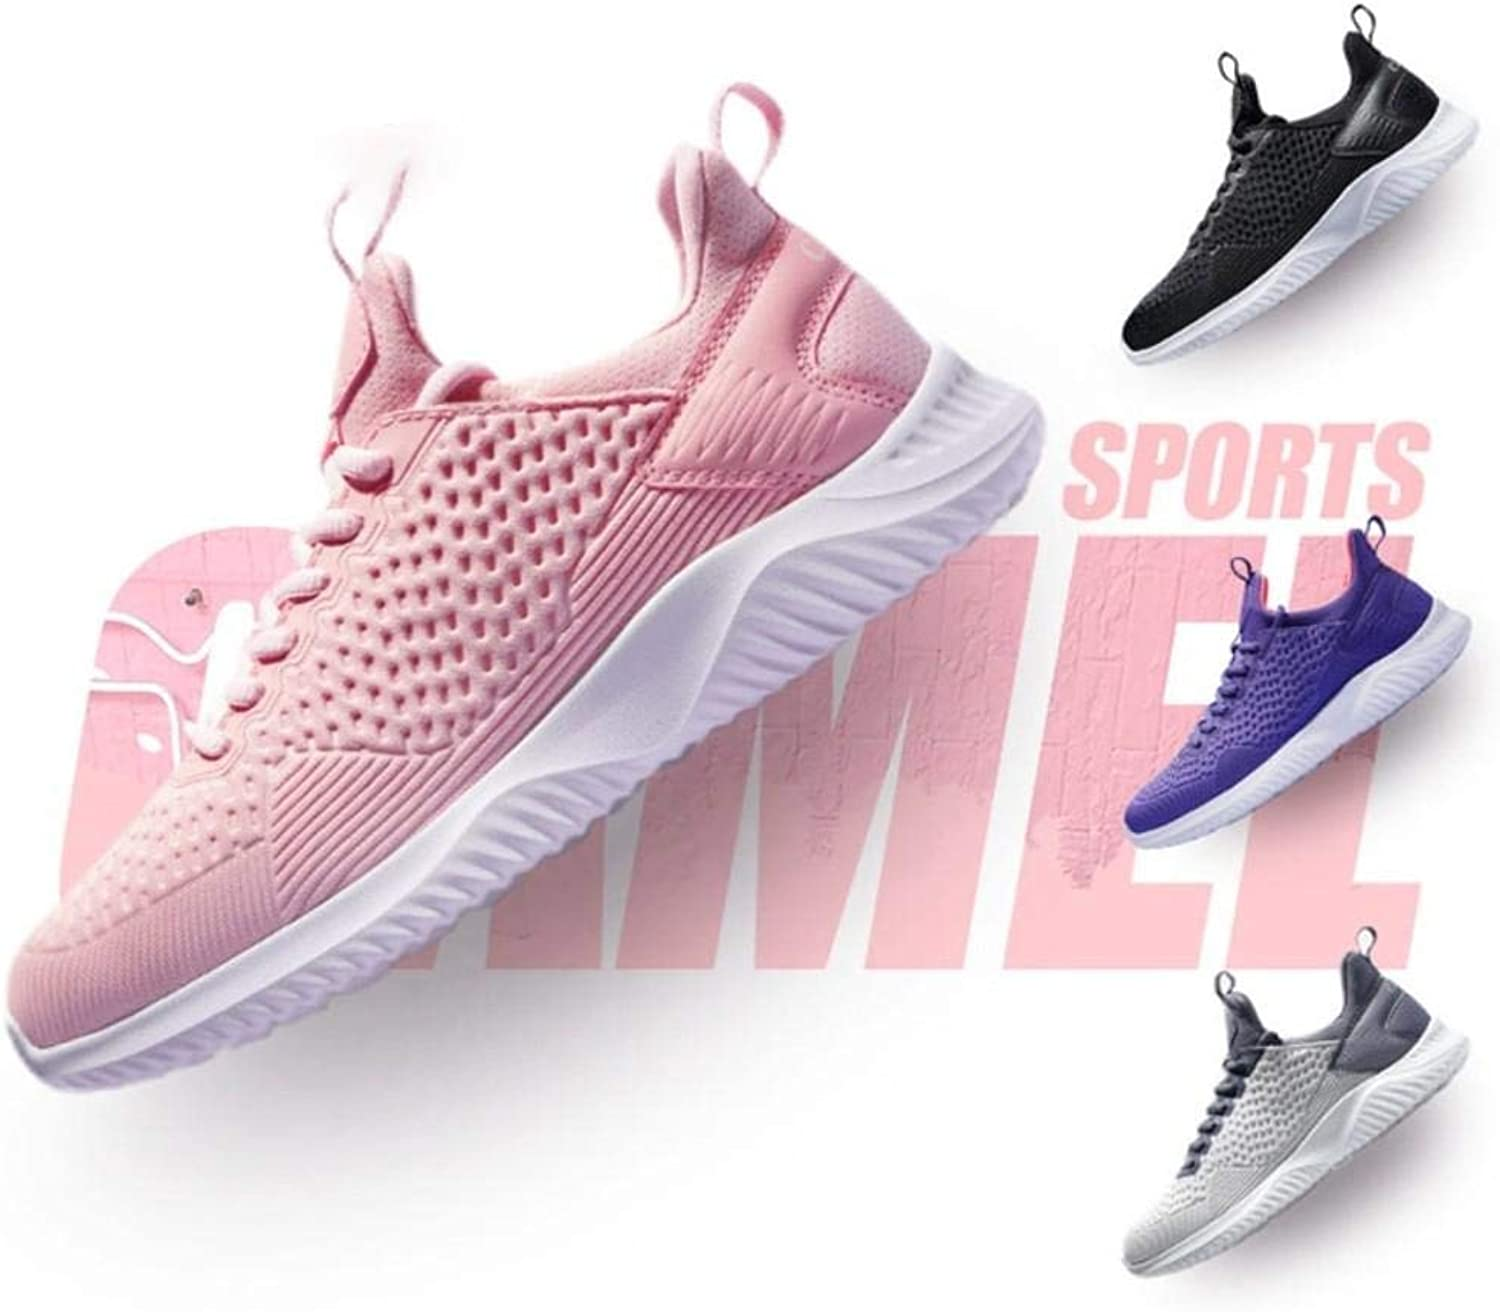 Camel New Breathable Running shoes Outdoor Jogging Walking Lightweight shoes Comfortable Sports Sneakers for Women